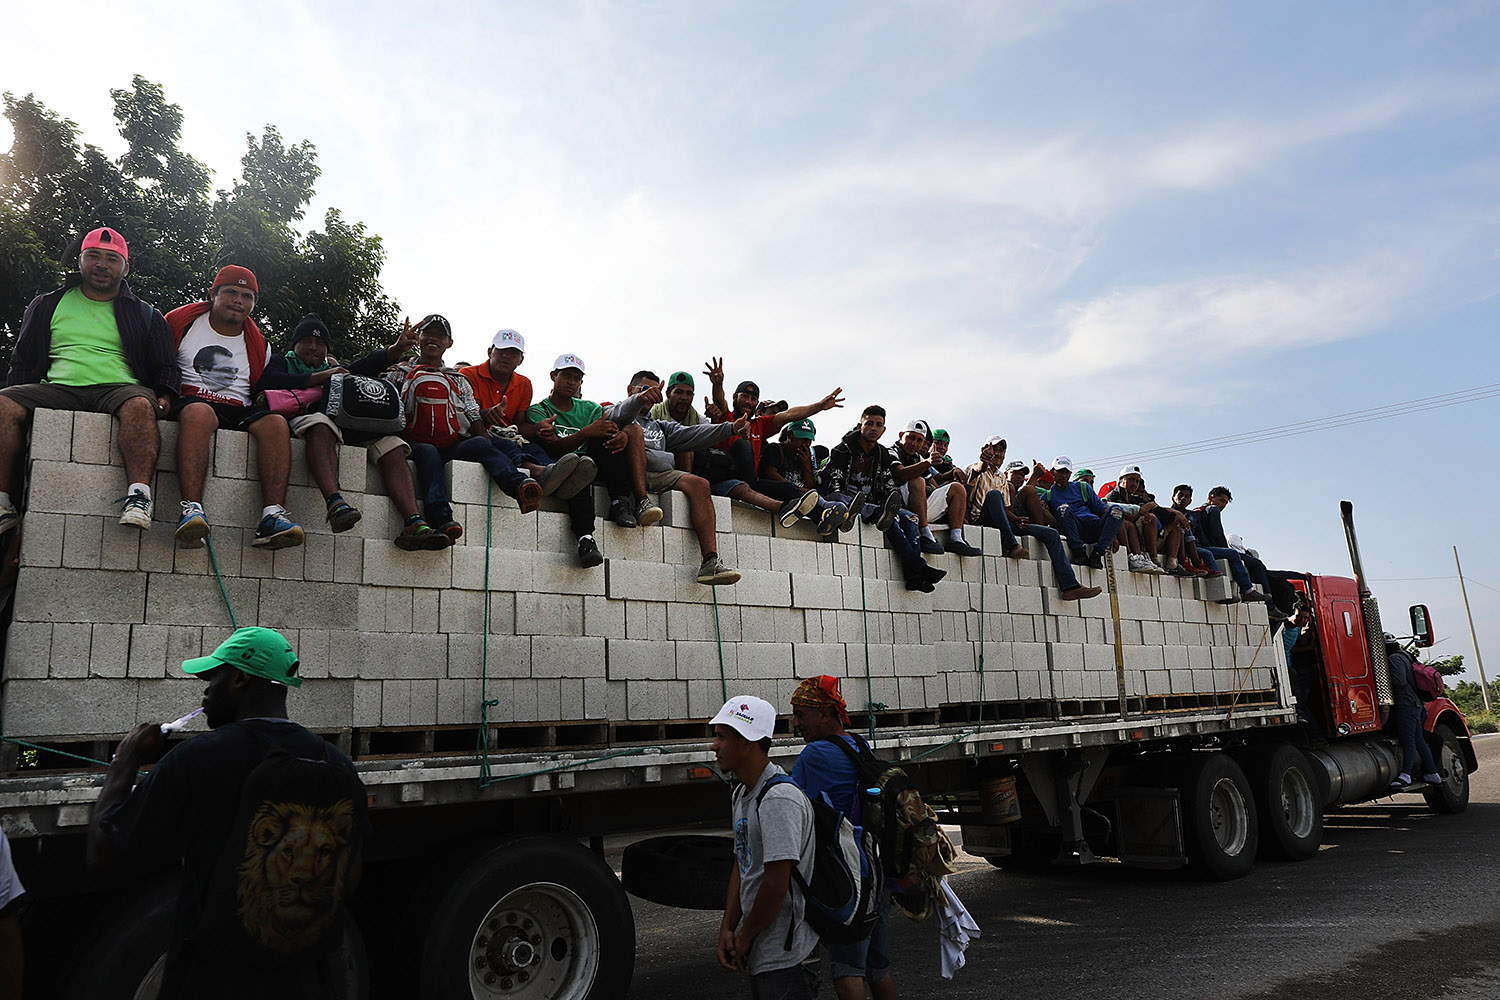 Some of the thousands of Central American migrants in the caravan get a lift to a camp for the evening on October 30, 2018 in Juchitan de Zaragoza, Mexico. Following a break on Sunday, the migrants, many of them fleeing violence in their home countries, resumed their march towards the United States border. As fatigue from the heat, distance and poor sanitary conditions has set in, the numbers of people participating in the march has slowly dwindled but a significant group are determined to get to the United Sates. It has been widely reported that the Pentagon will deploy up to 5,200 active-duty troops to the U.S.-Mexico border in an effort to prevent members of the migrant caravan from illegally entering the country. (Photo by Spencer Platt/Getty Images)